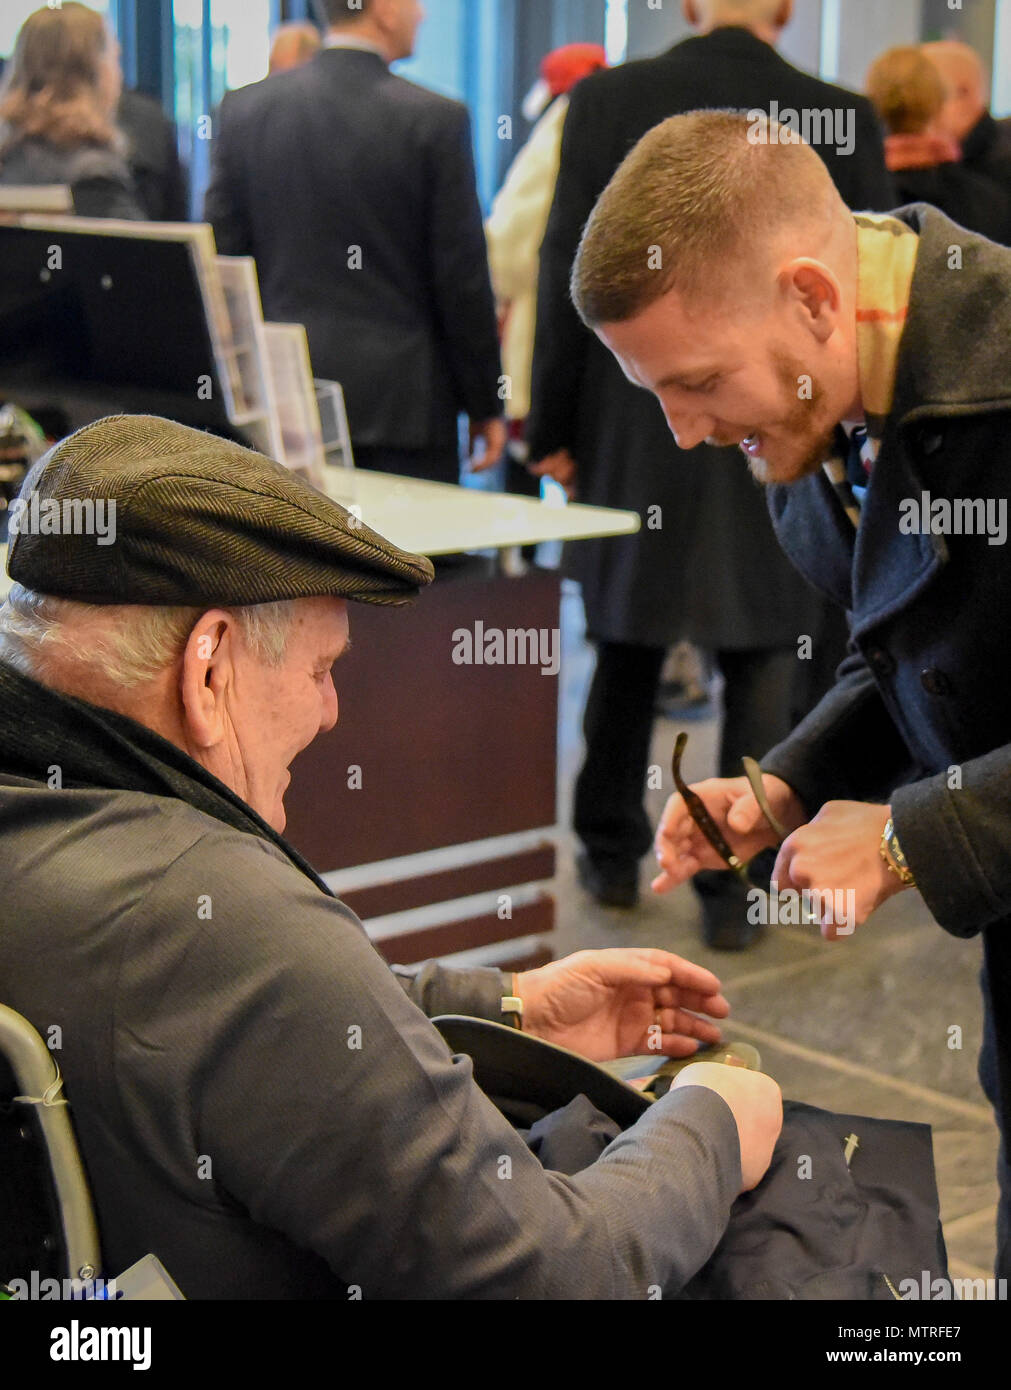 Former U.S. Army Spc. Kenneth Stumpf, Medal of Honor recipient and retired U.S. Marine Corps Cpl. William Kyle Carpenter, Medal of Honor recipient, exchange coins during a traditional Inaugural Day Medal of Honor breakfast held at the Reserve Officers Association headquarters in Washington D.C., January 20, 2017. (U.S. Army Reserve photo by Master Sgt. Marisol Walker/Released) Stock Photo